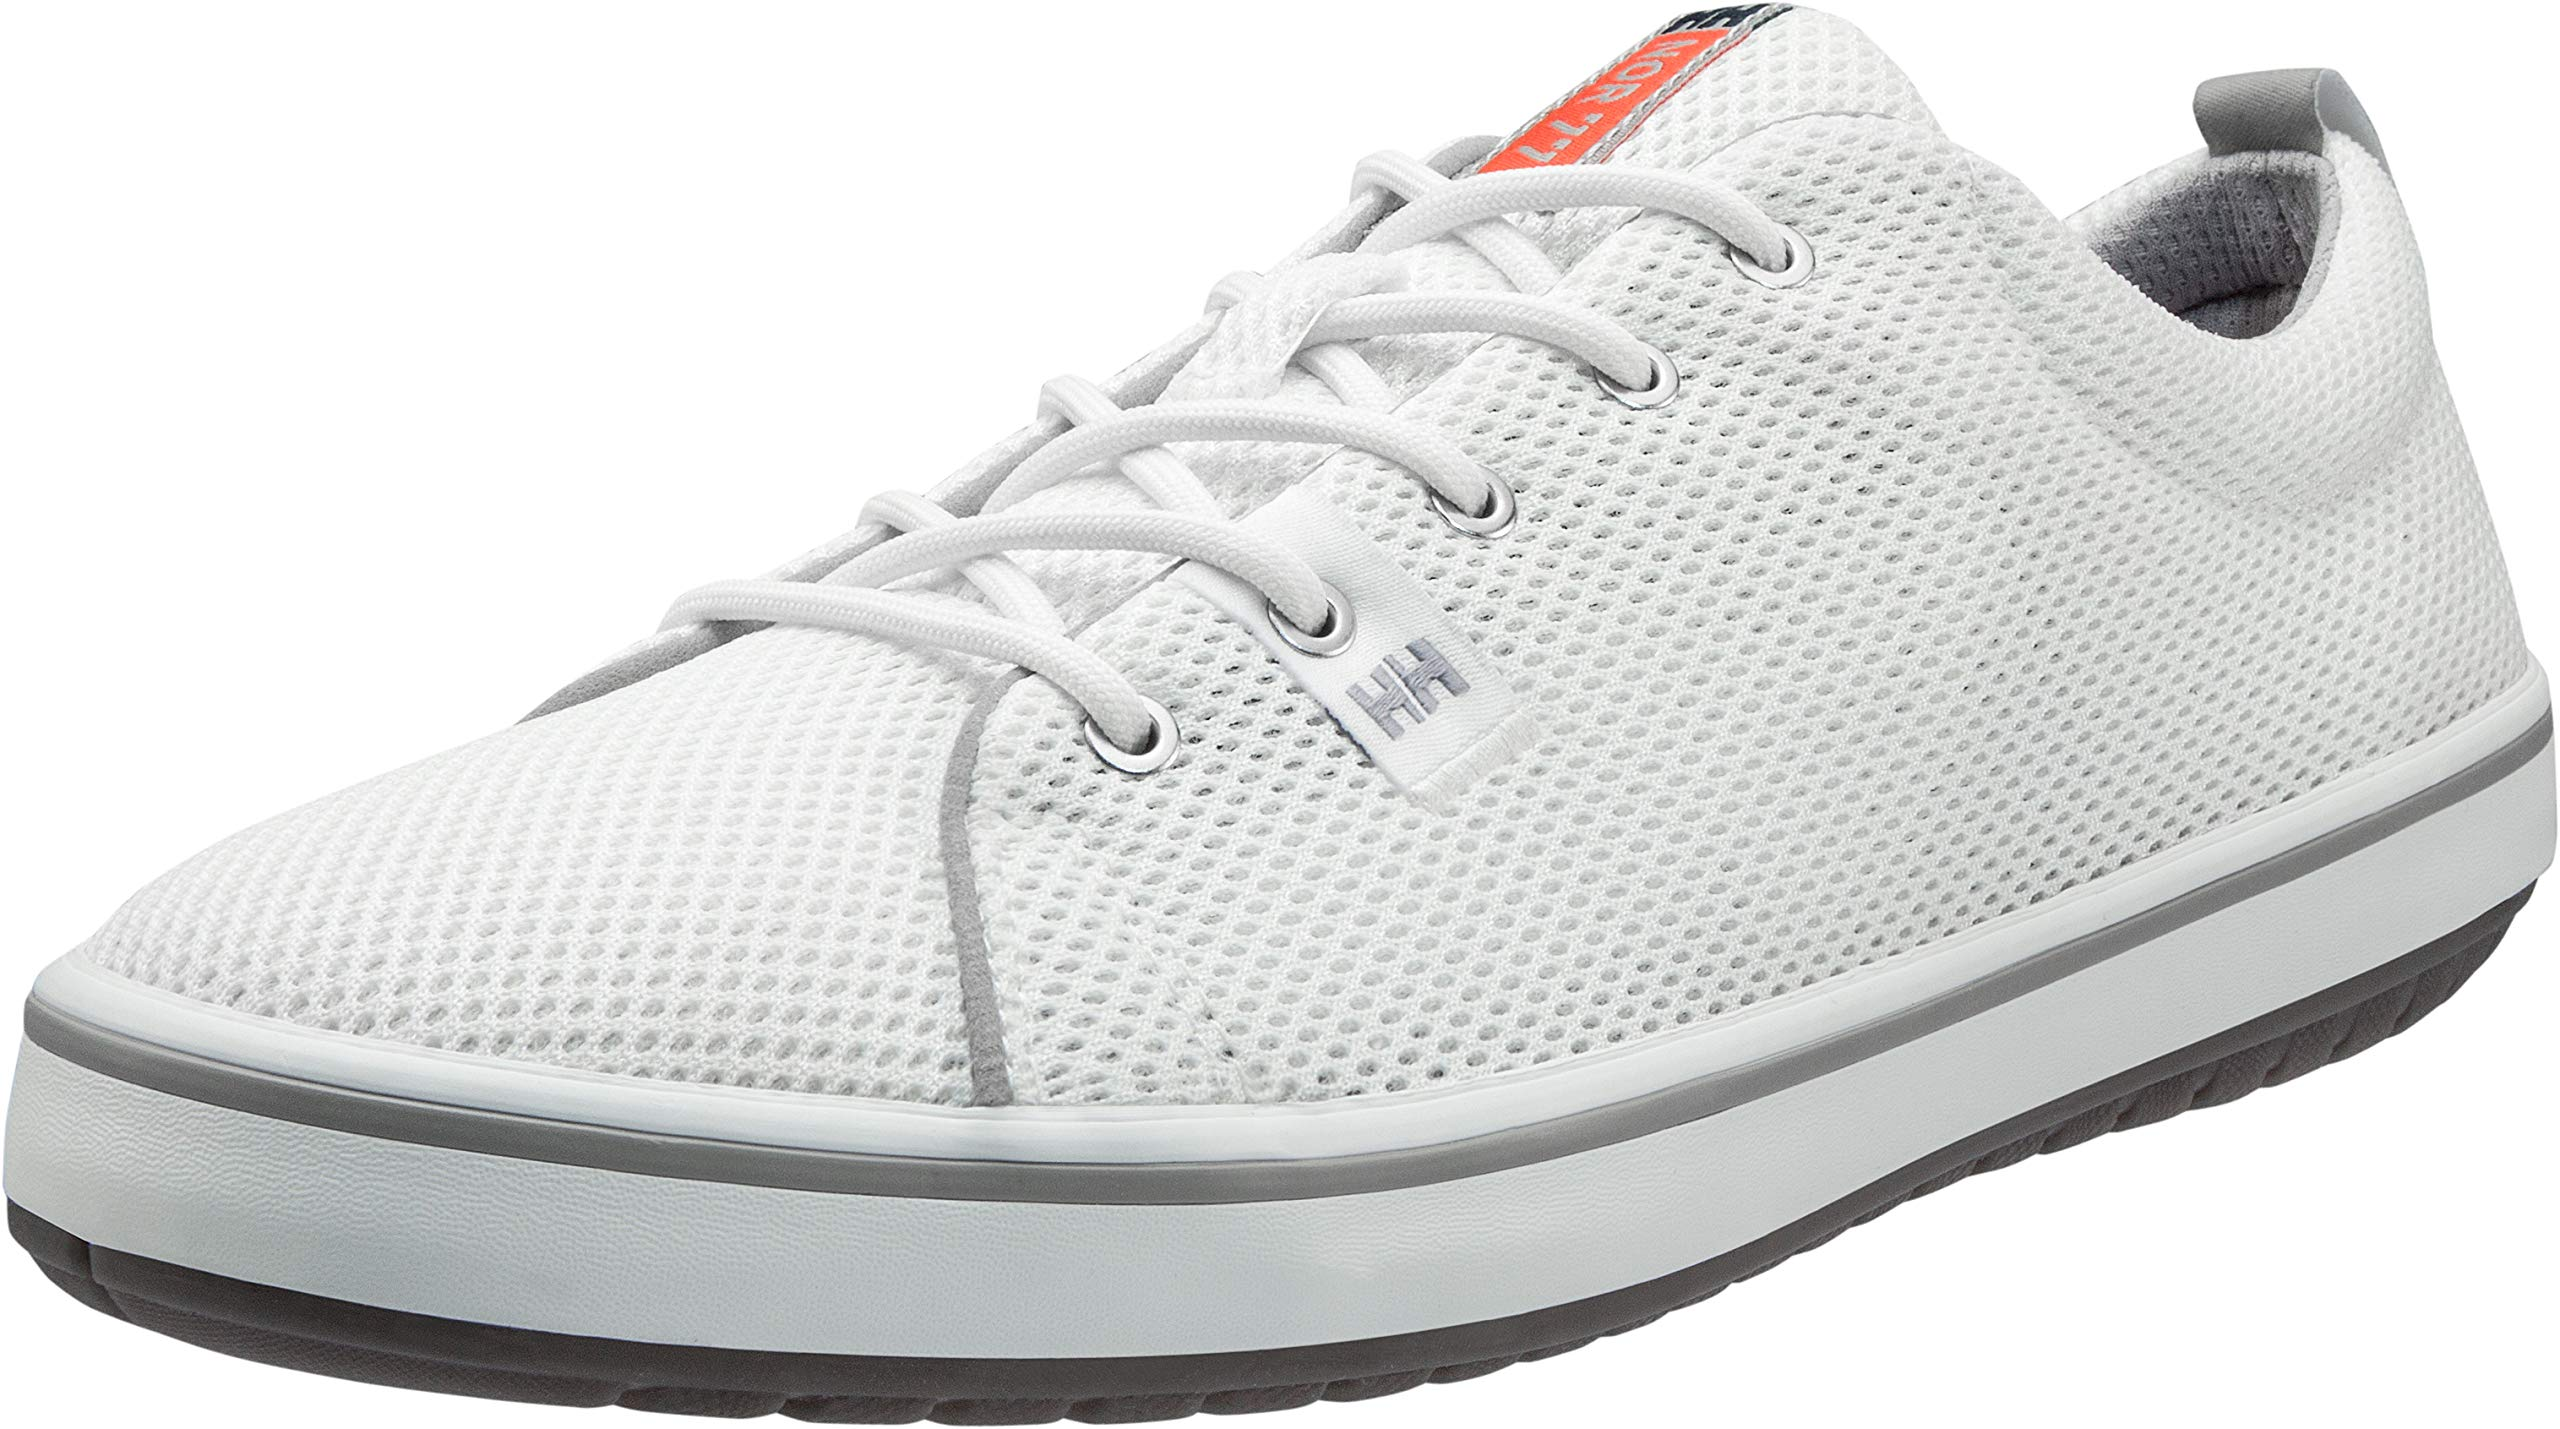 Helly Hansen Men's Scurry 2 Mesh Low-Cut Sneaker, Off White/Light Grey/Grenadine/Smoked Pearl Gum, 12 by Helly Hansen